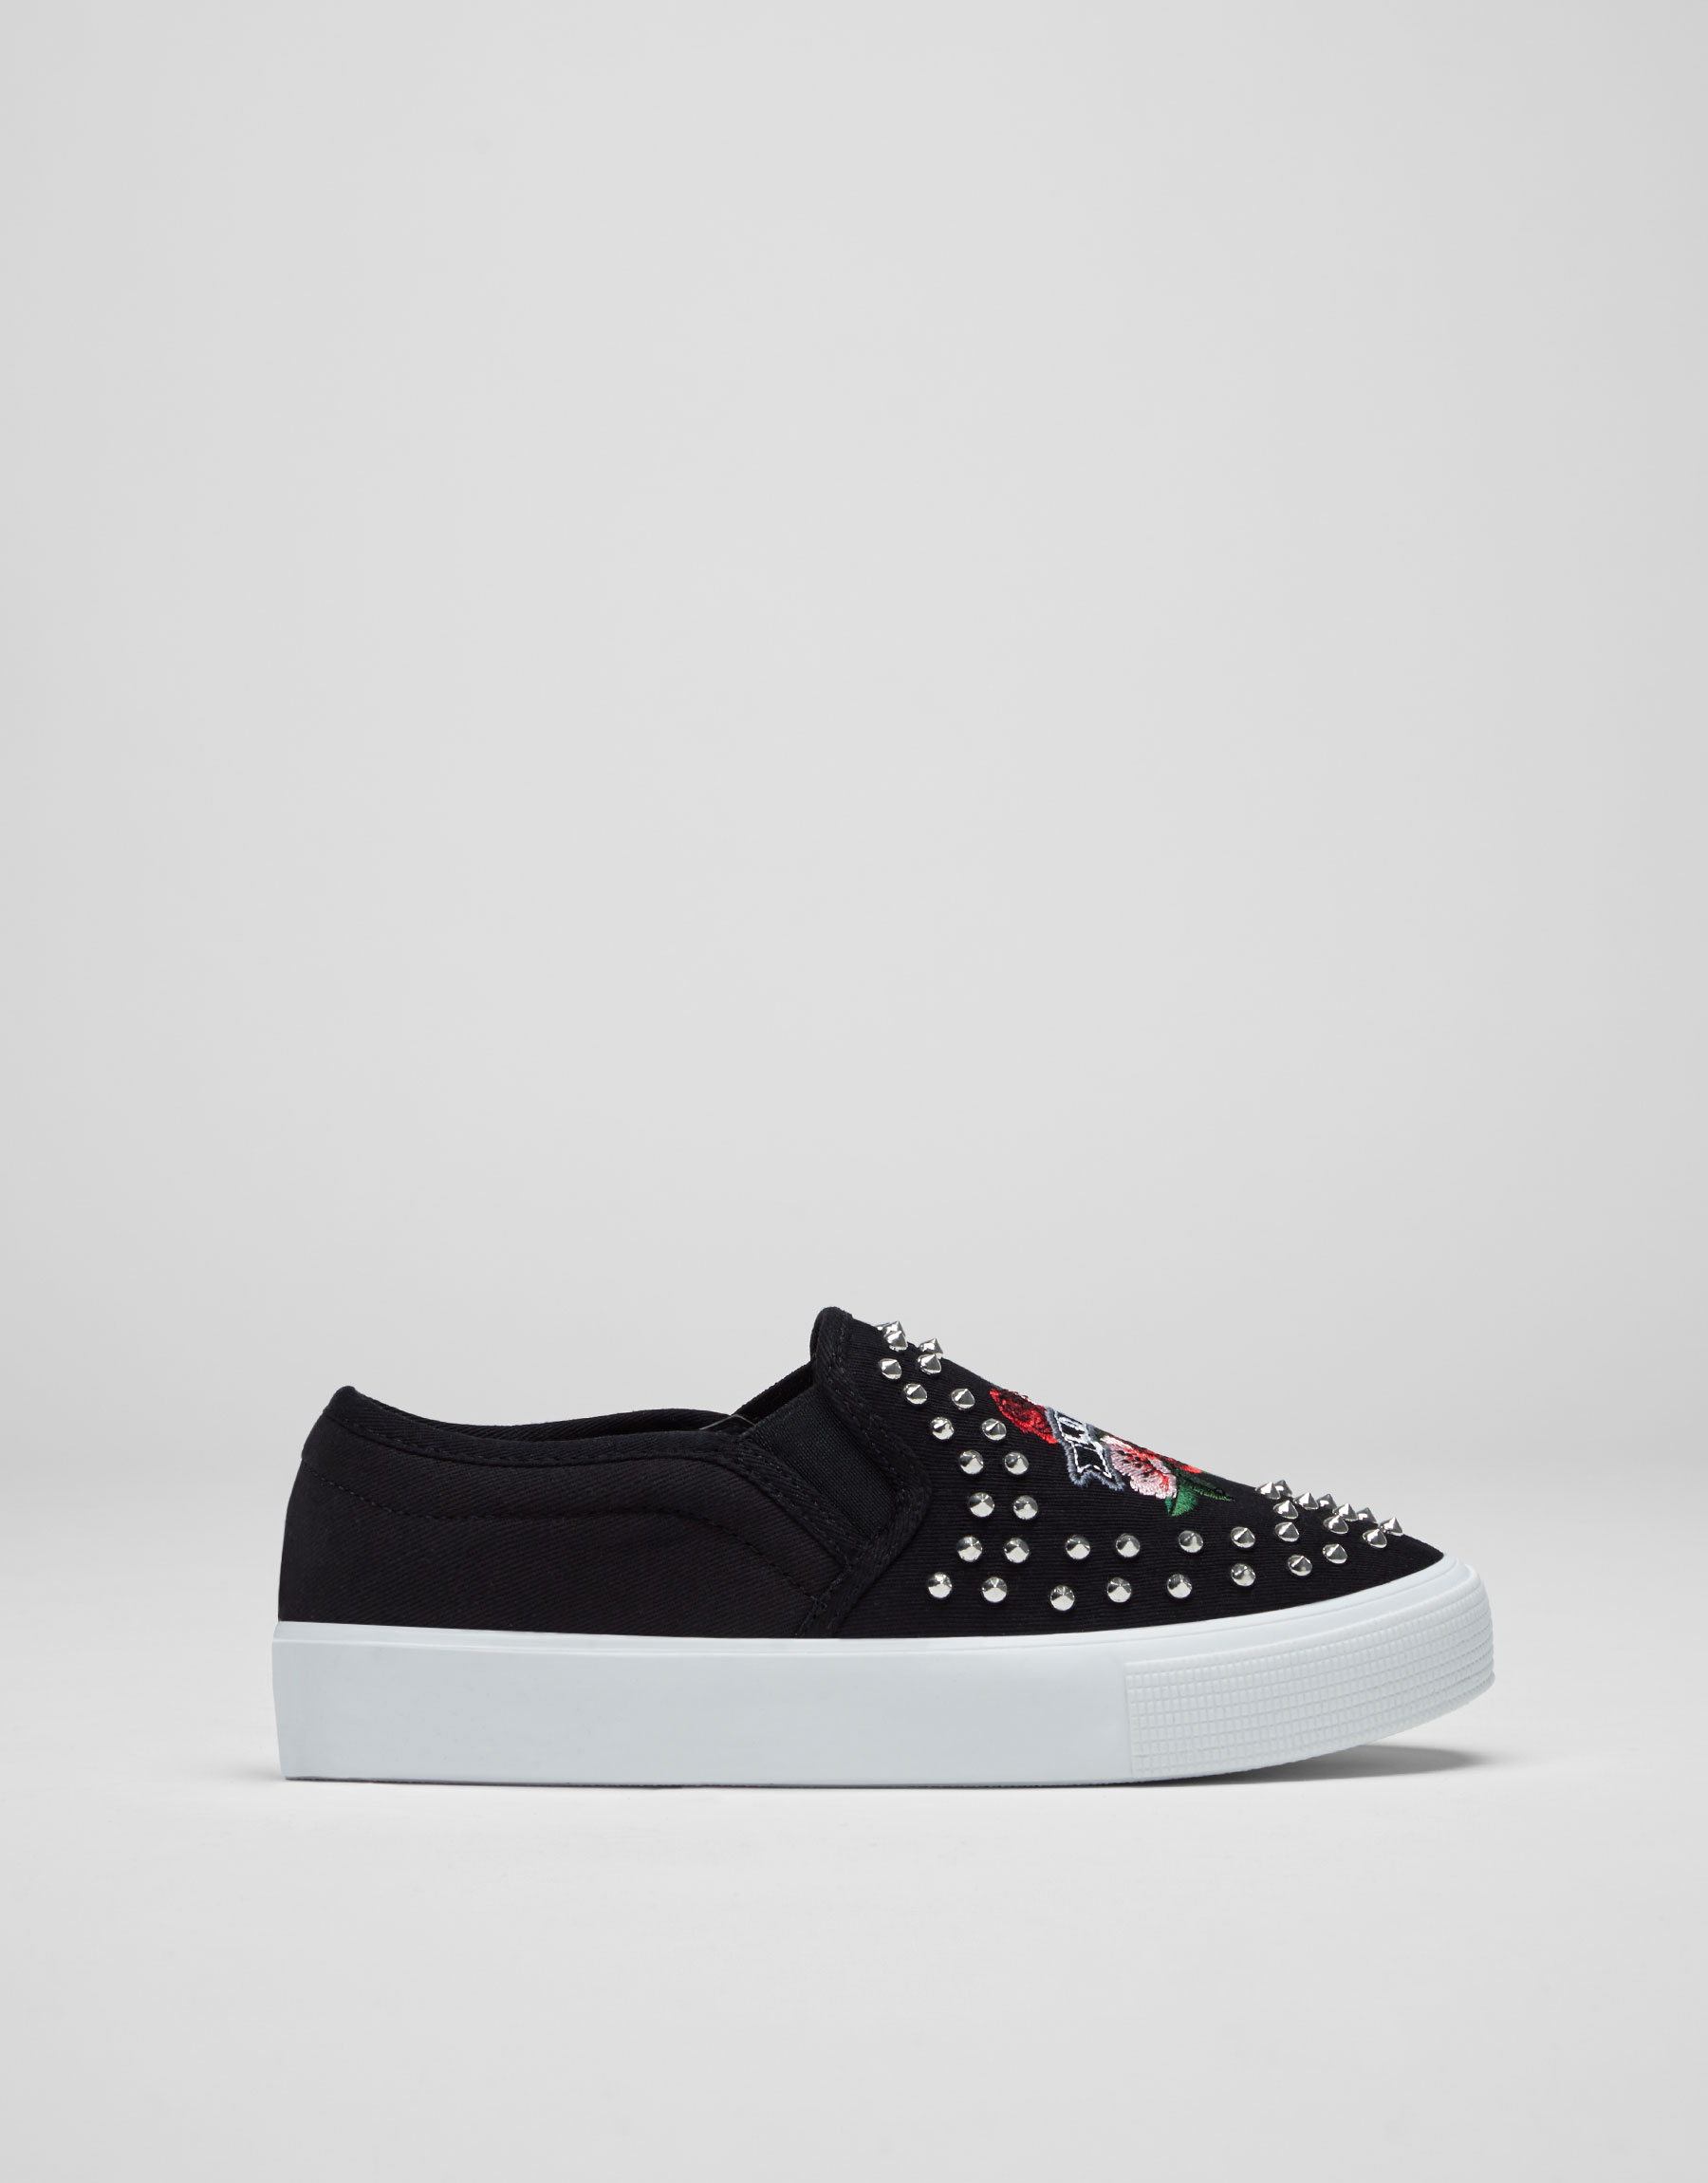 Studded urban sneakers